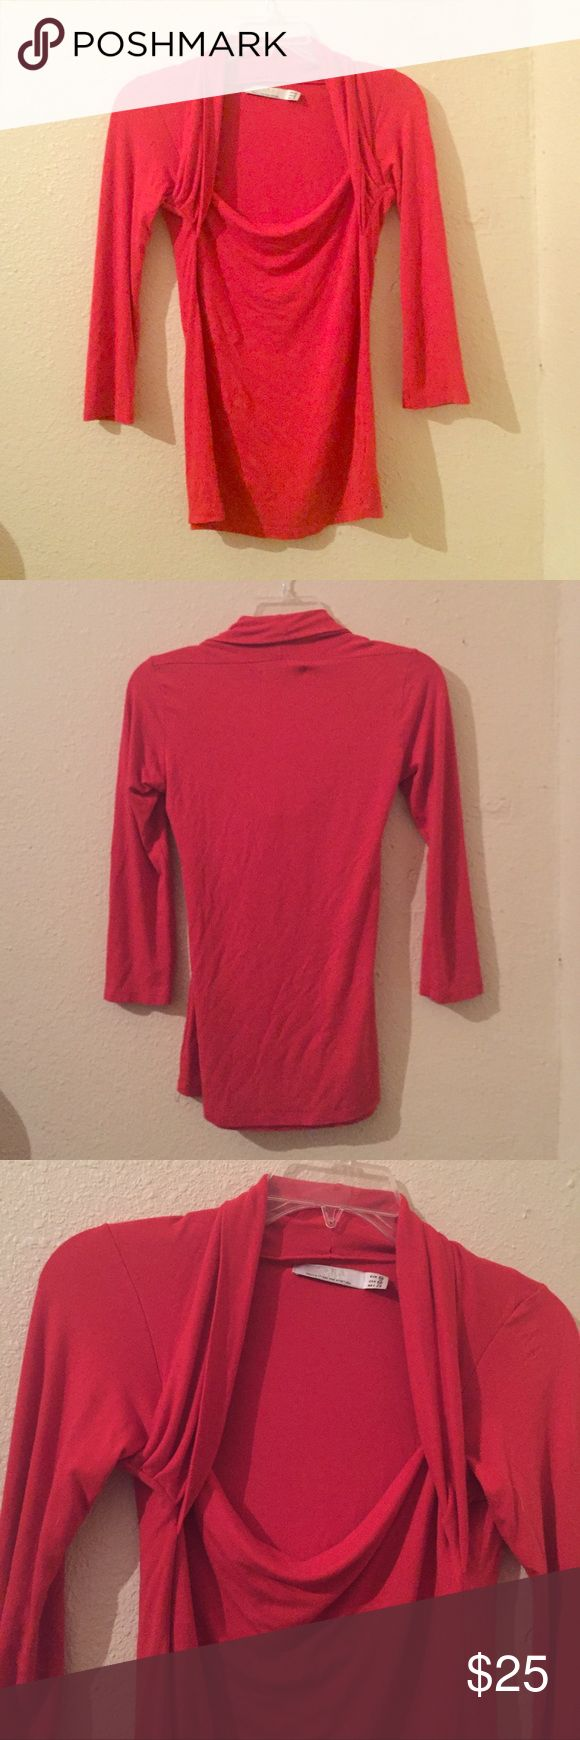 🍄ZARA Red Orange Dress Shirt Zara red orange dress shirt. Shoulder/chest area is open. Soft and stretchy. Dress up or down. Small hole near tag (see pics, price reflects).  Worn and in good condition! Zara Tops Tees - Long Sleeve